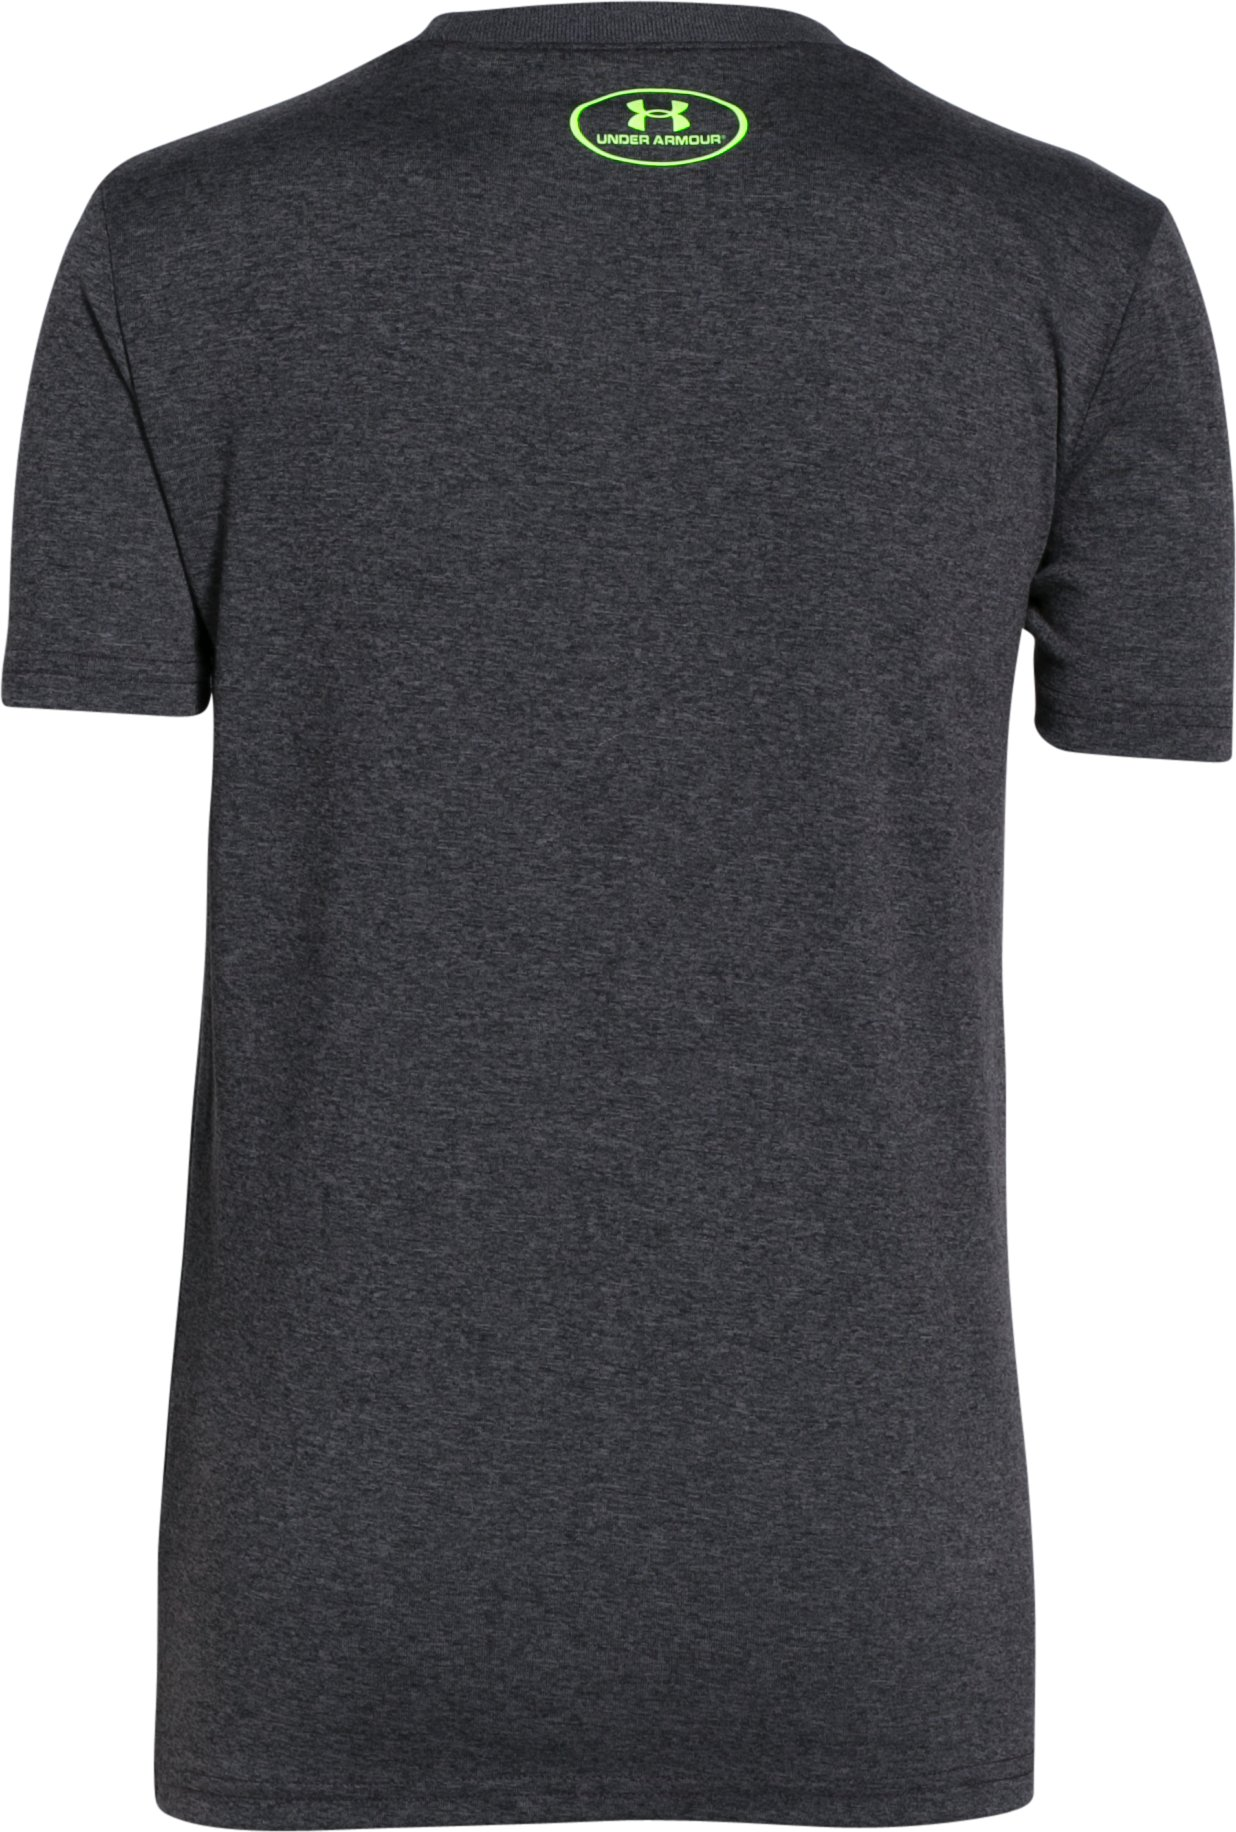 Boys' UA Dual Logo T-Shirt, Carbon Heather, undefined